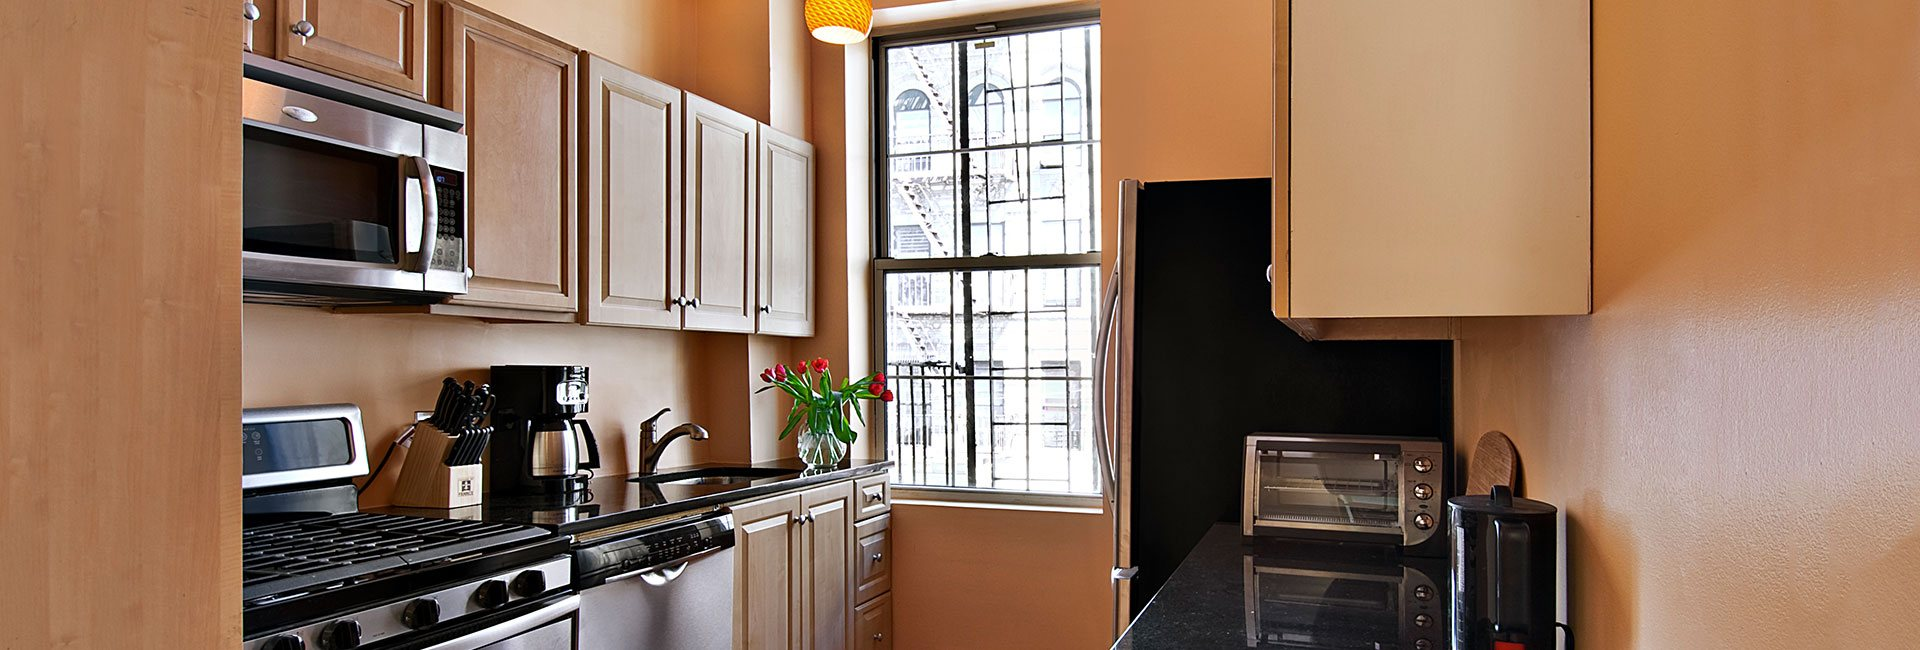 Kitchen in SOL Apartment New York